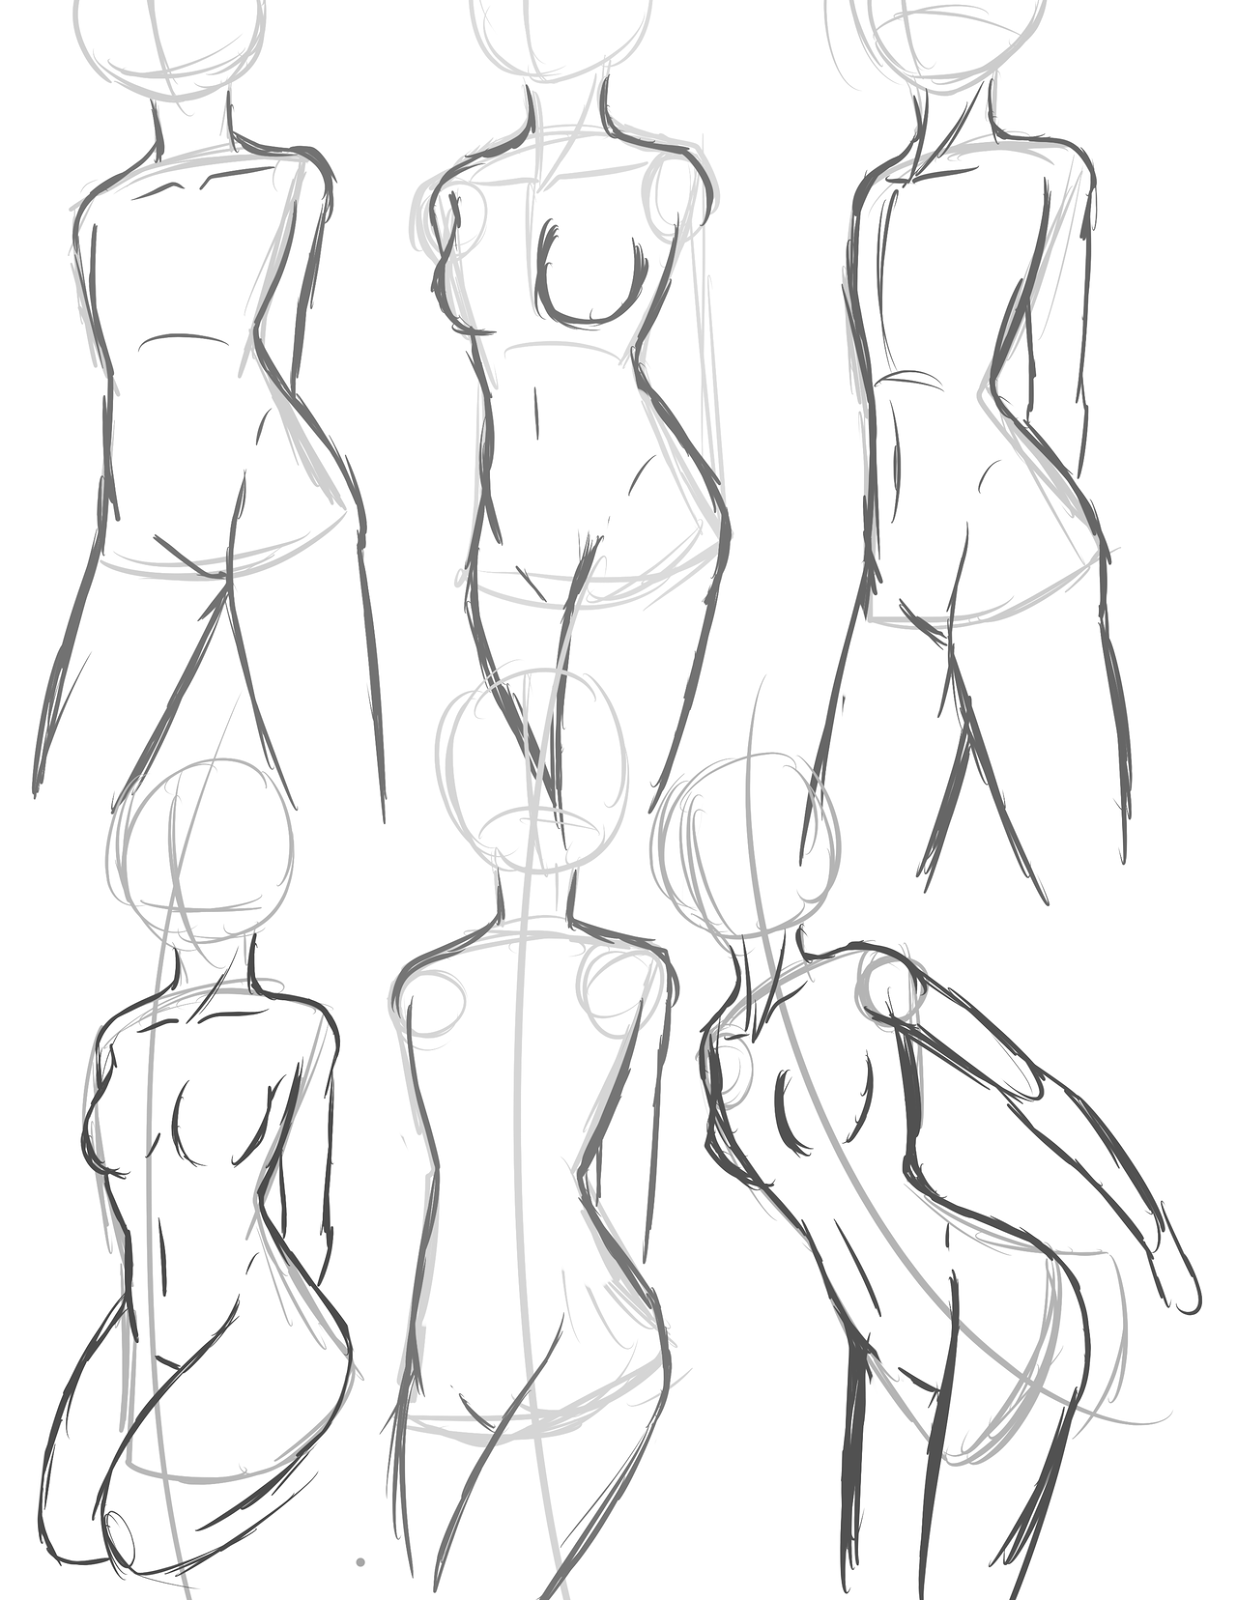 Anime anatomy basic drawing tutorial | JAPANESE ANIME ART | Drawing ...